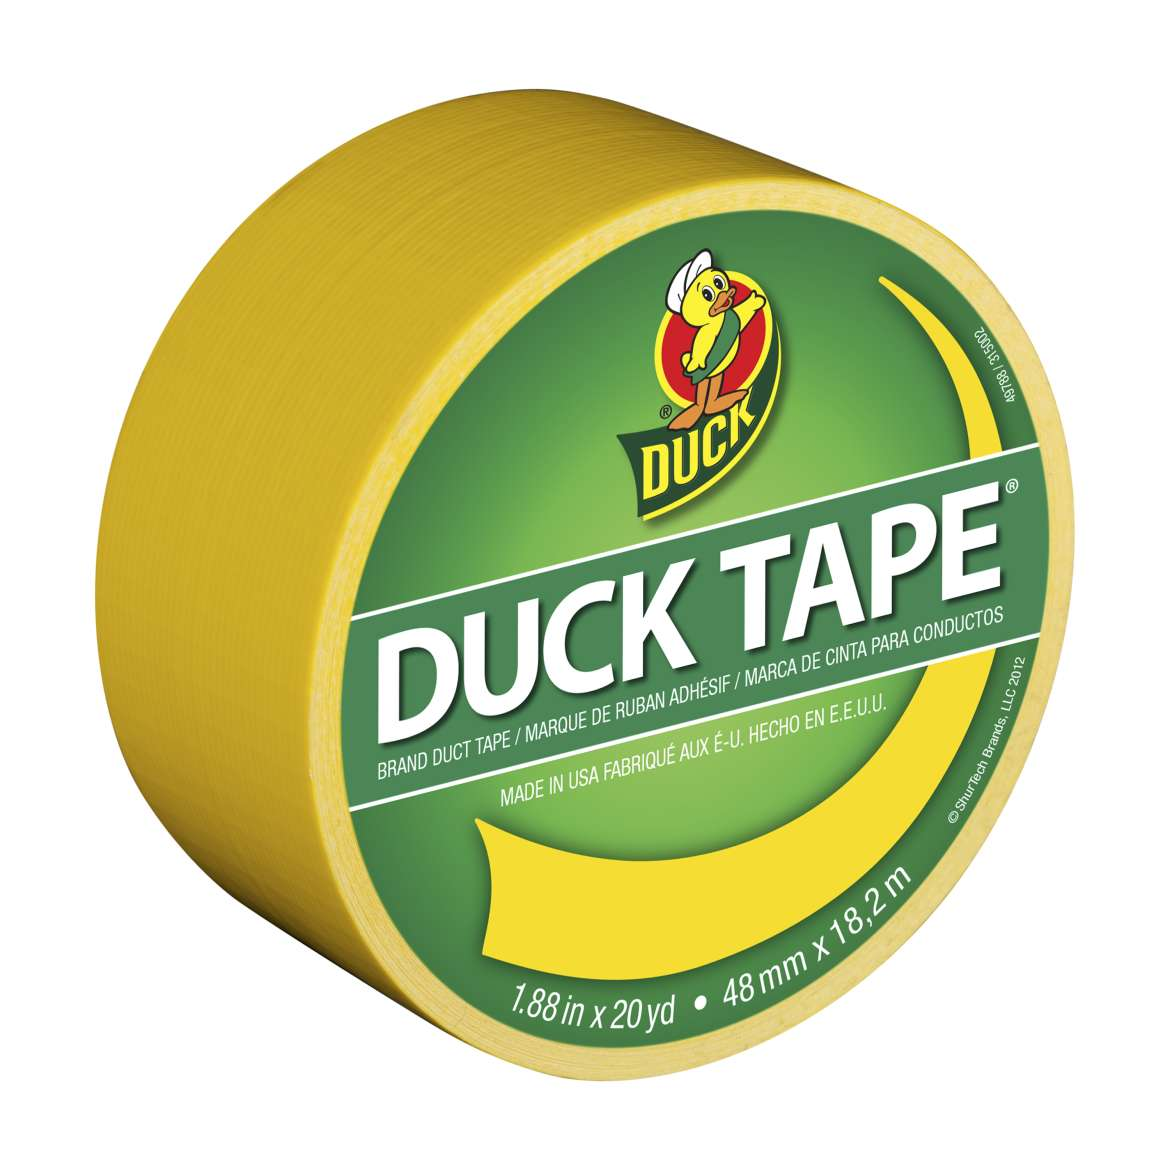 Color Duck Tape Brand Duct Tape - Yellow, 1.88 in. x 20 yd